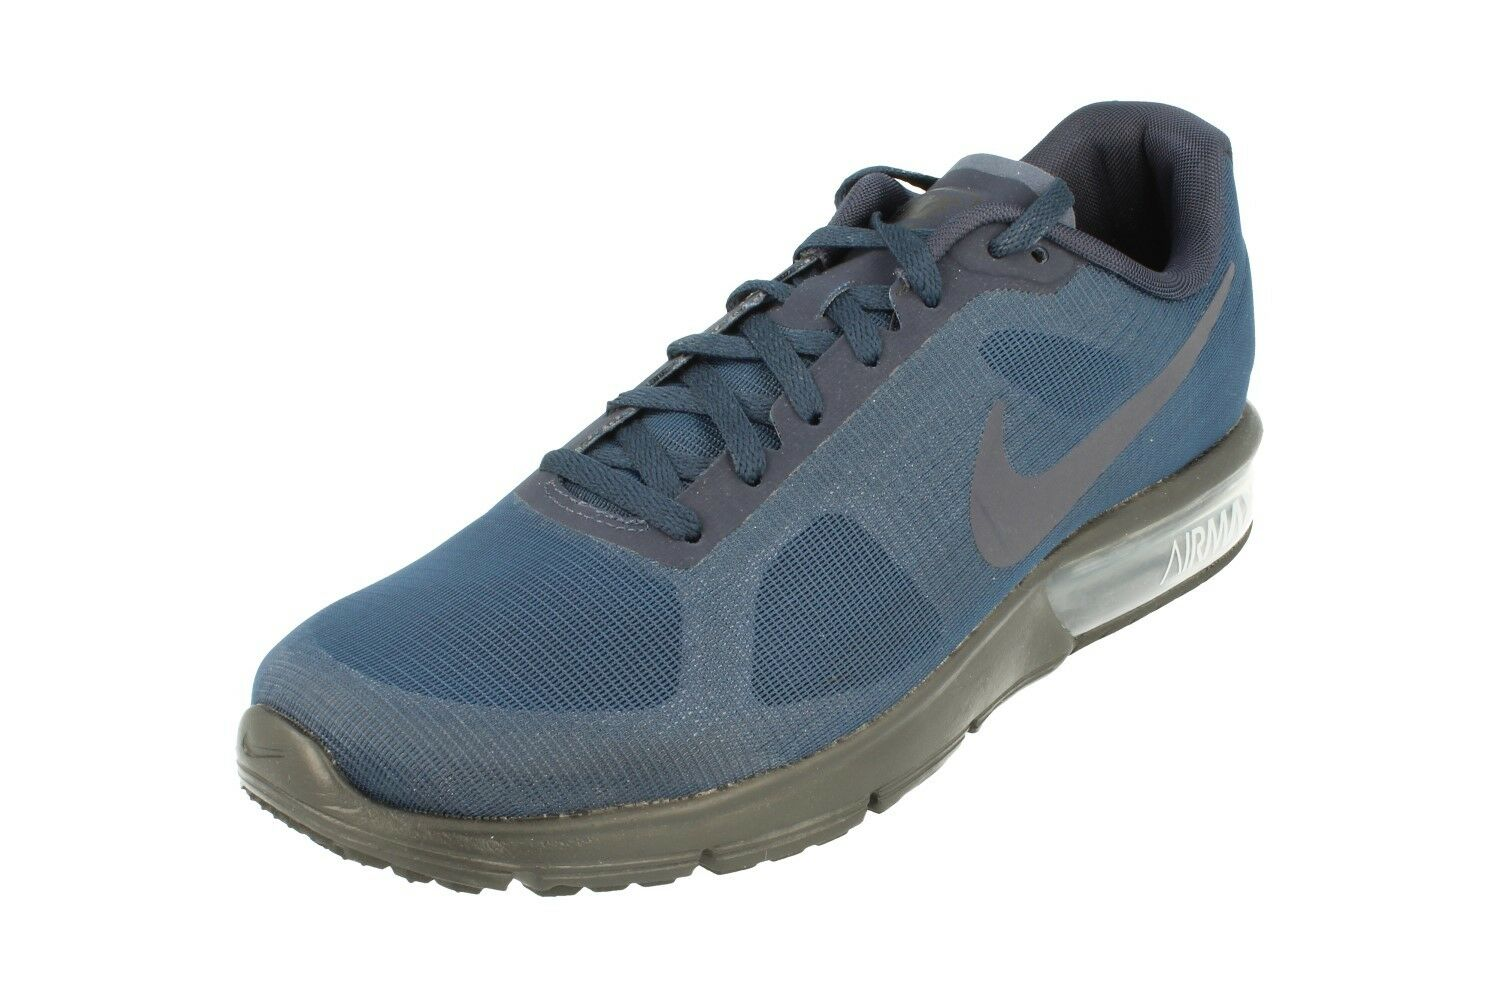 Nike Air Max Sequent Mens Running Trainers 719912 Sneakers Shoes 410